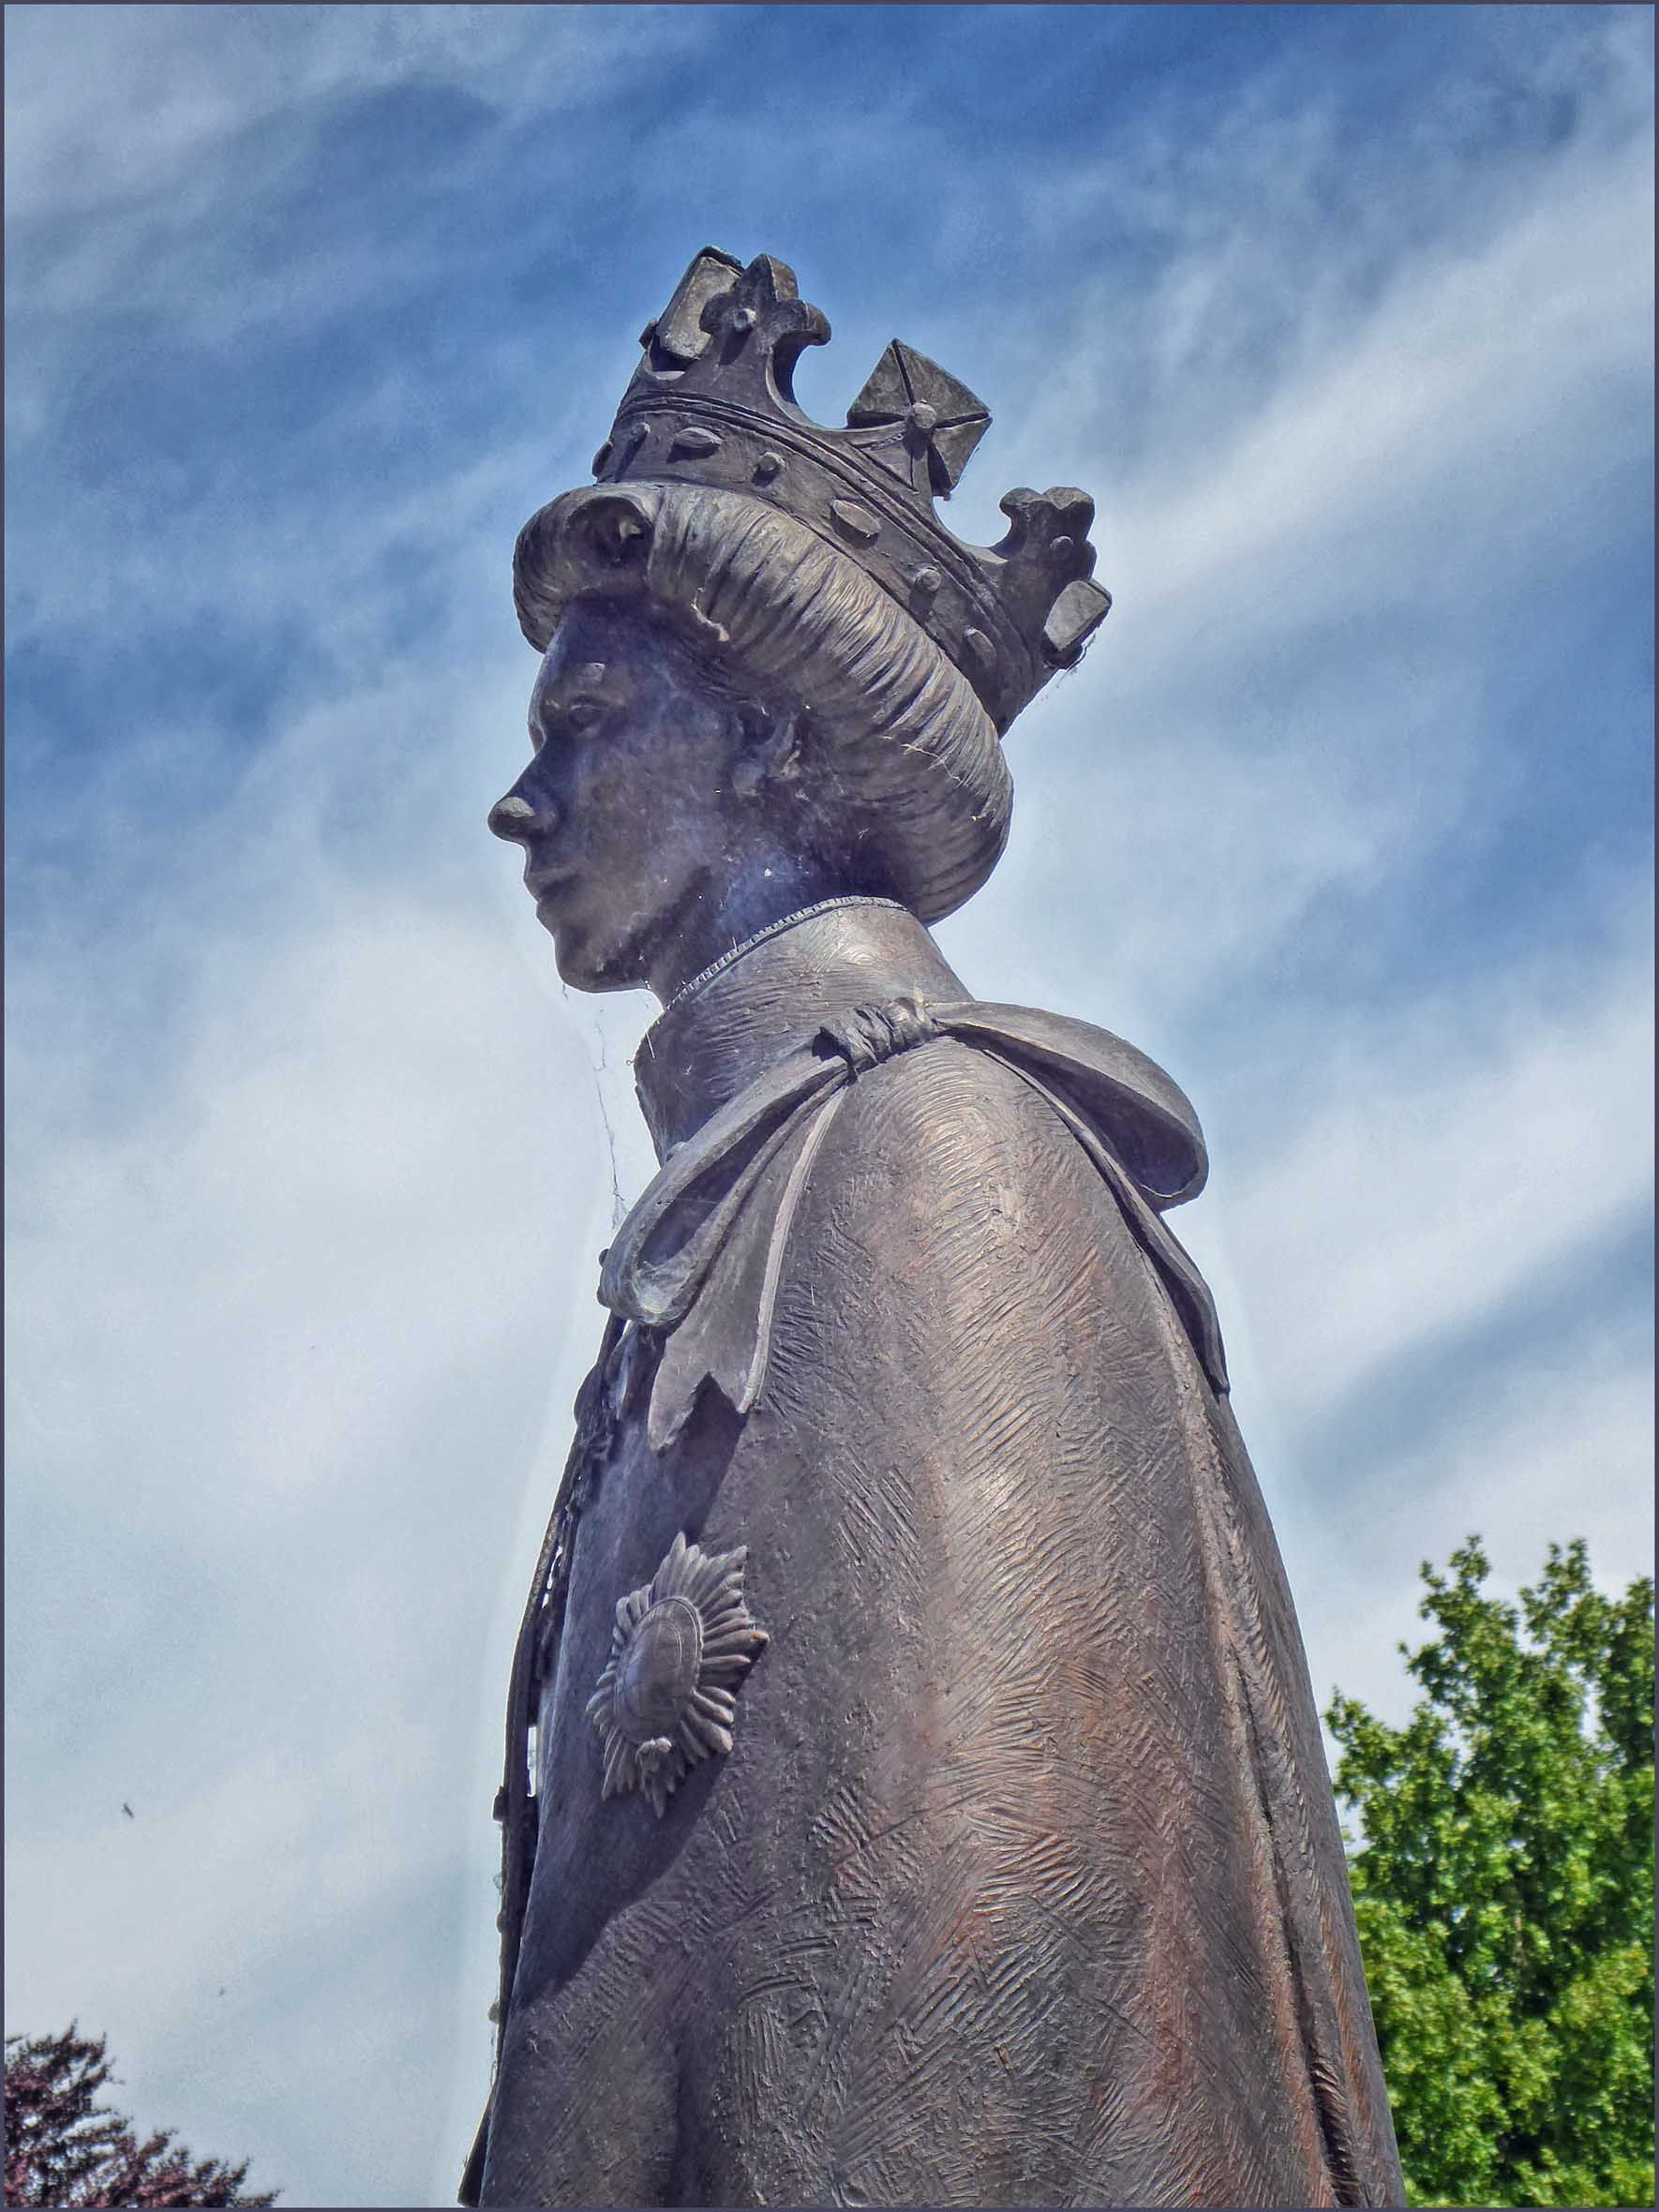 Stone statue of lady wearing crown